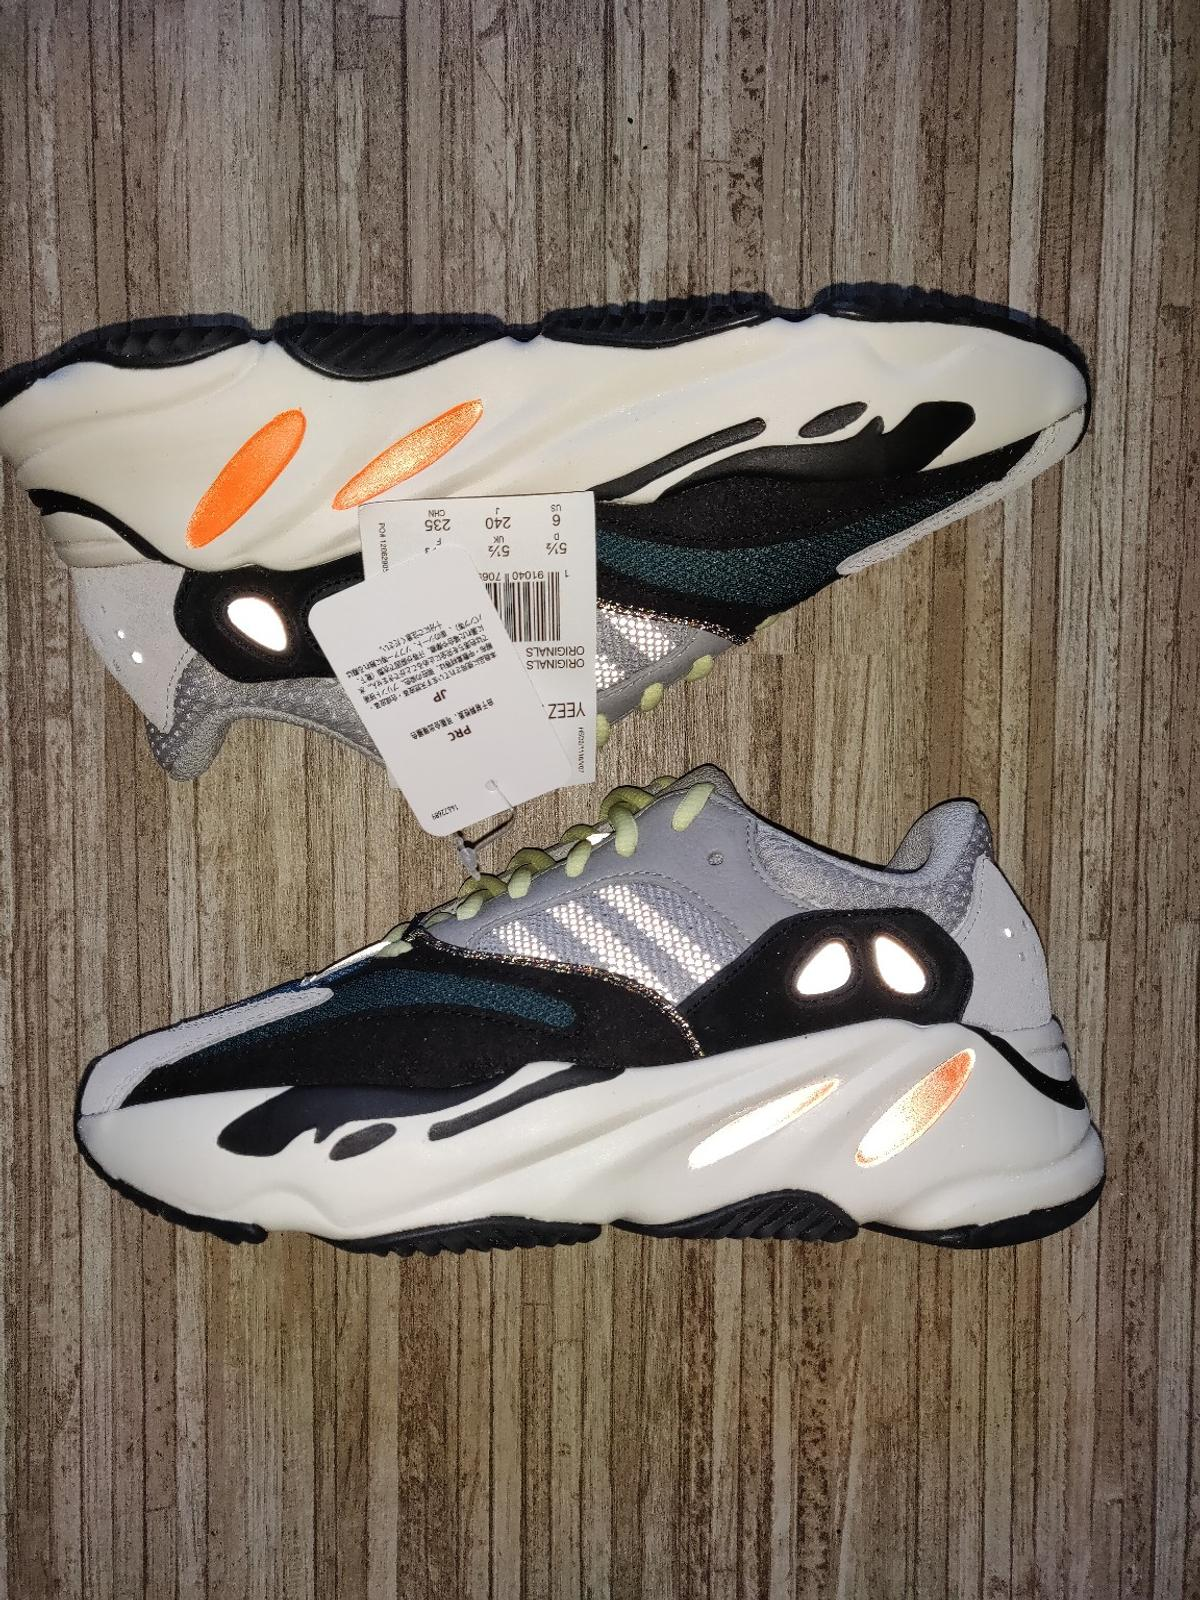 on sale 36fc9 72be1 Adidas Yeezy 700 Wave Runner Bae Size